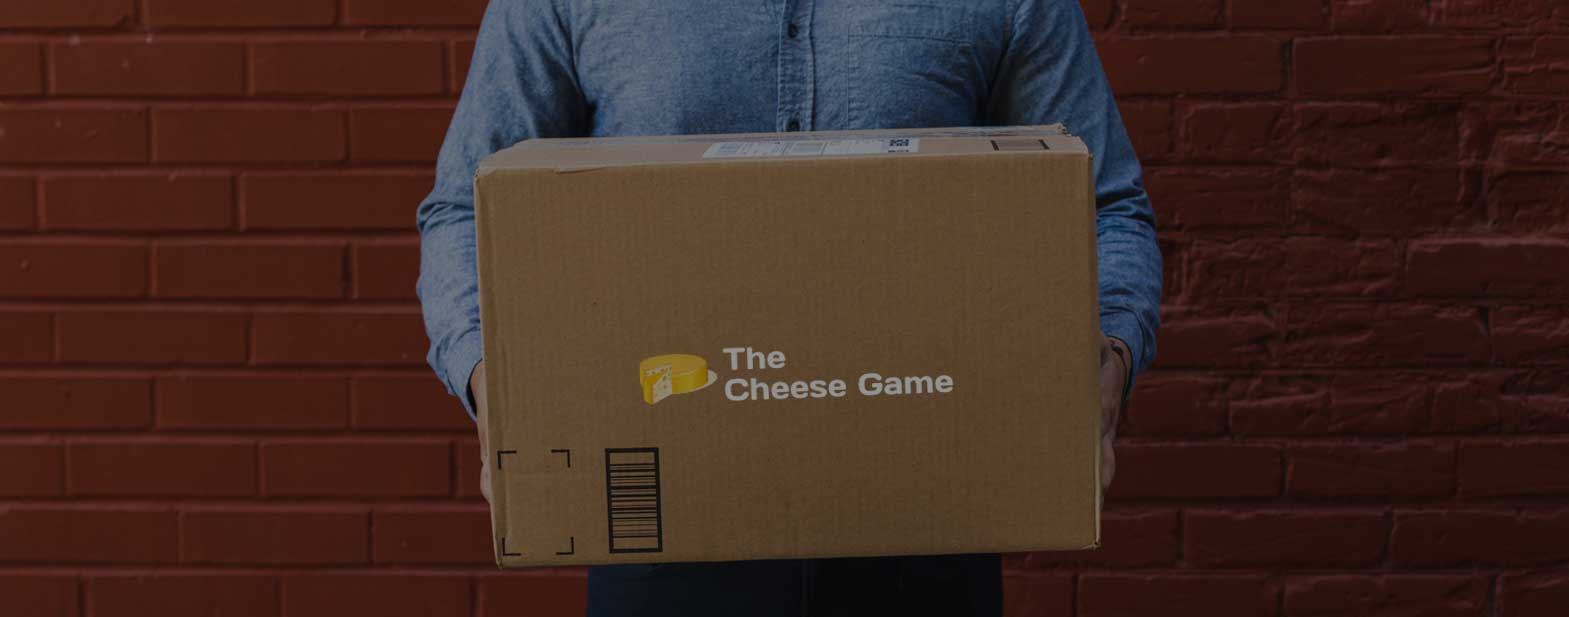 the-chesse-game-delivery